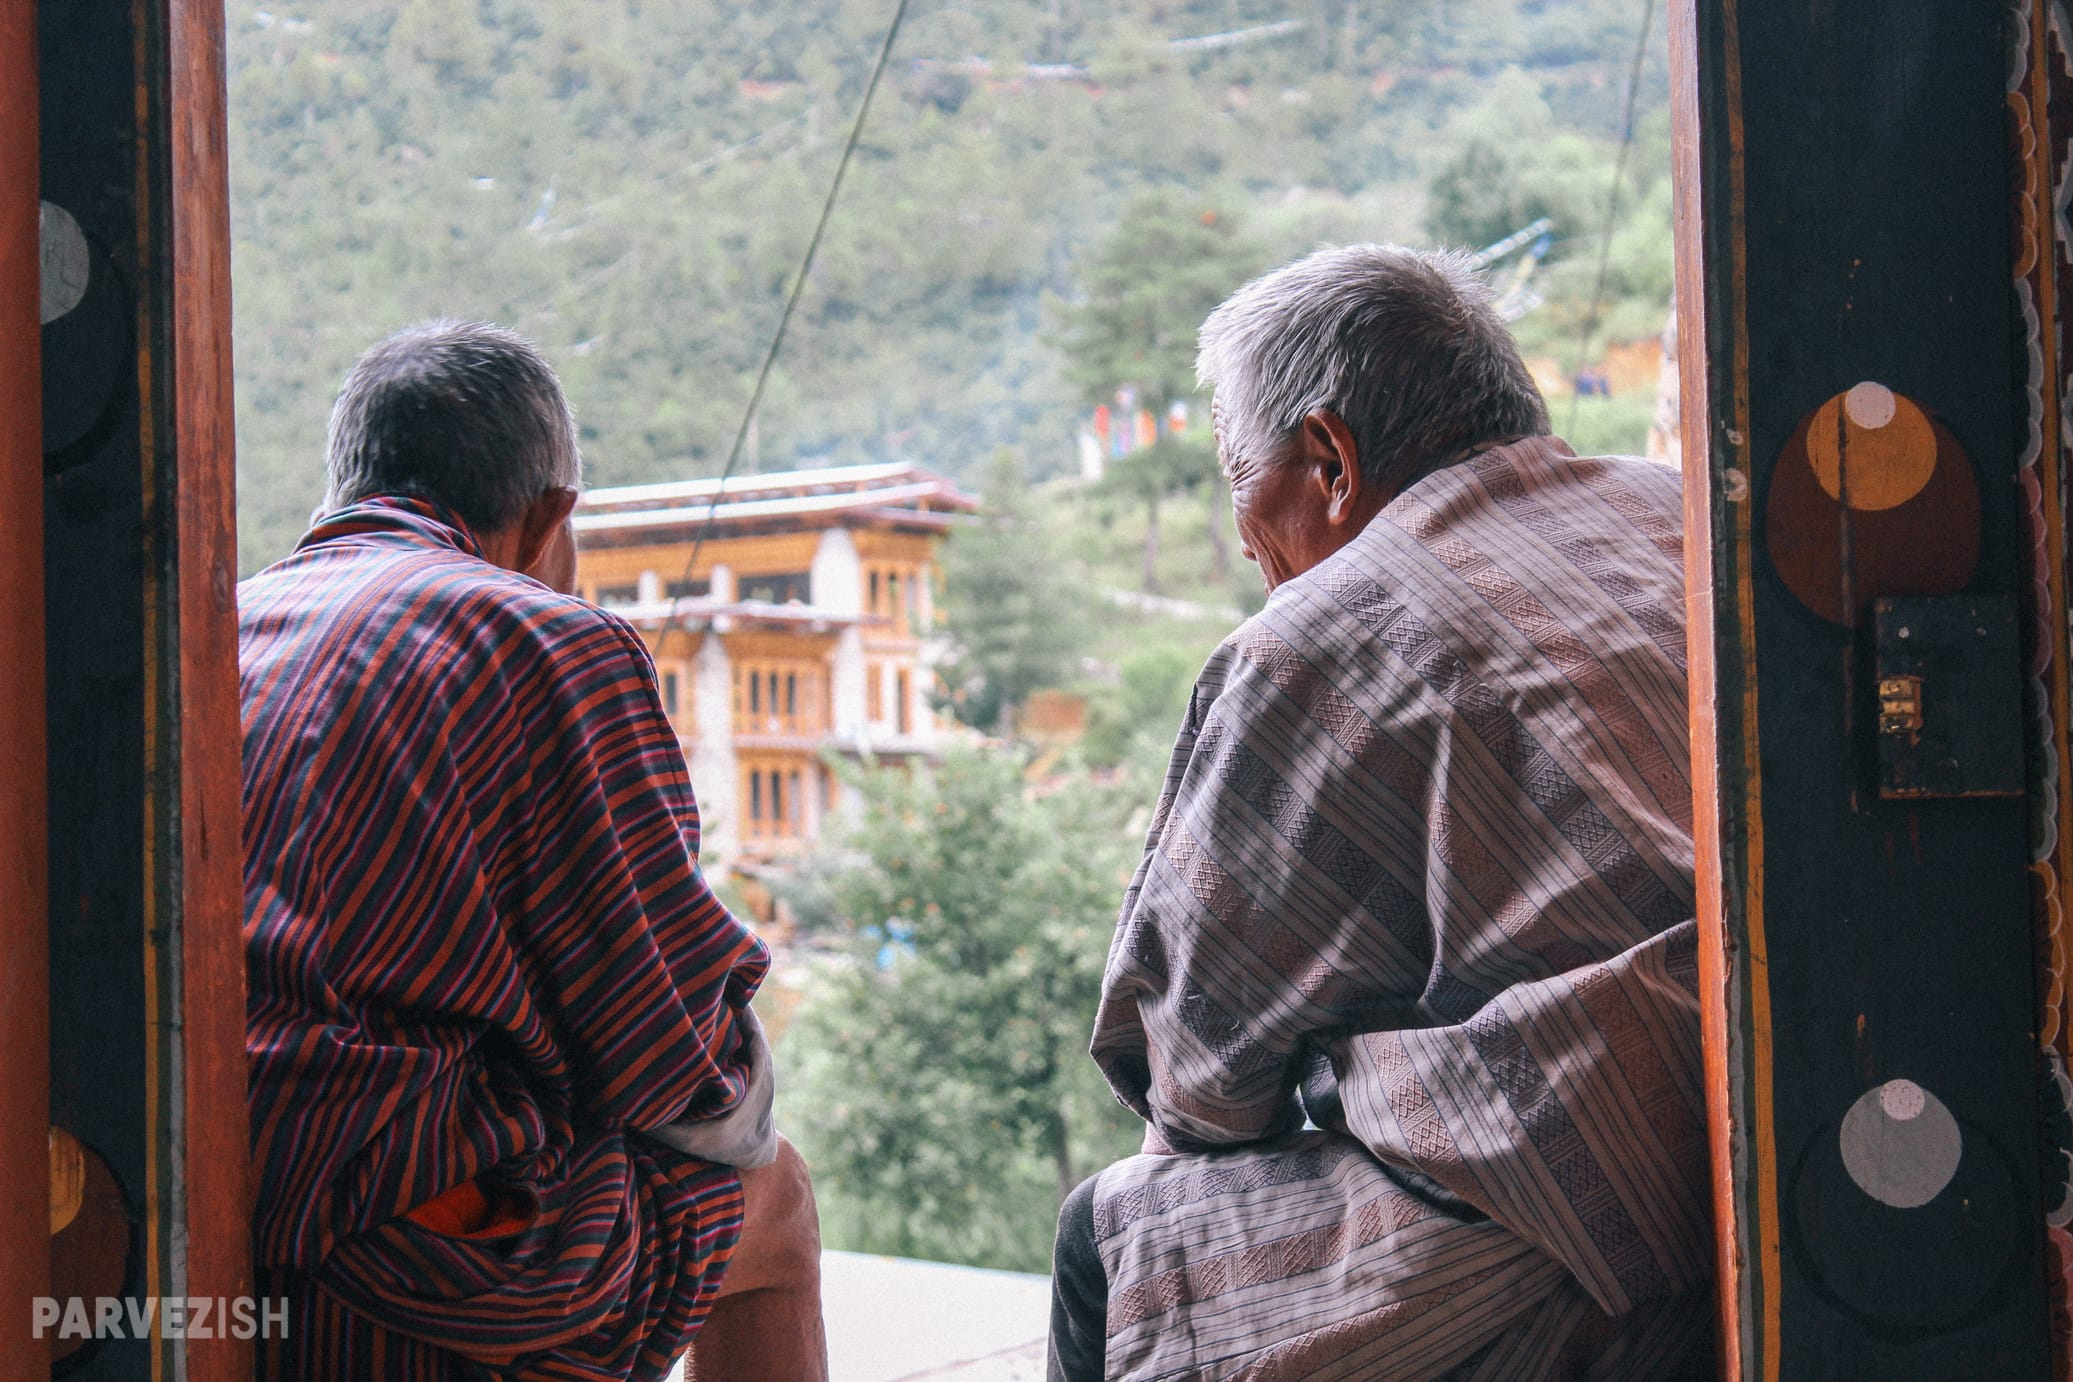 Two Men Engaged in a Conversation in Bhutan